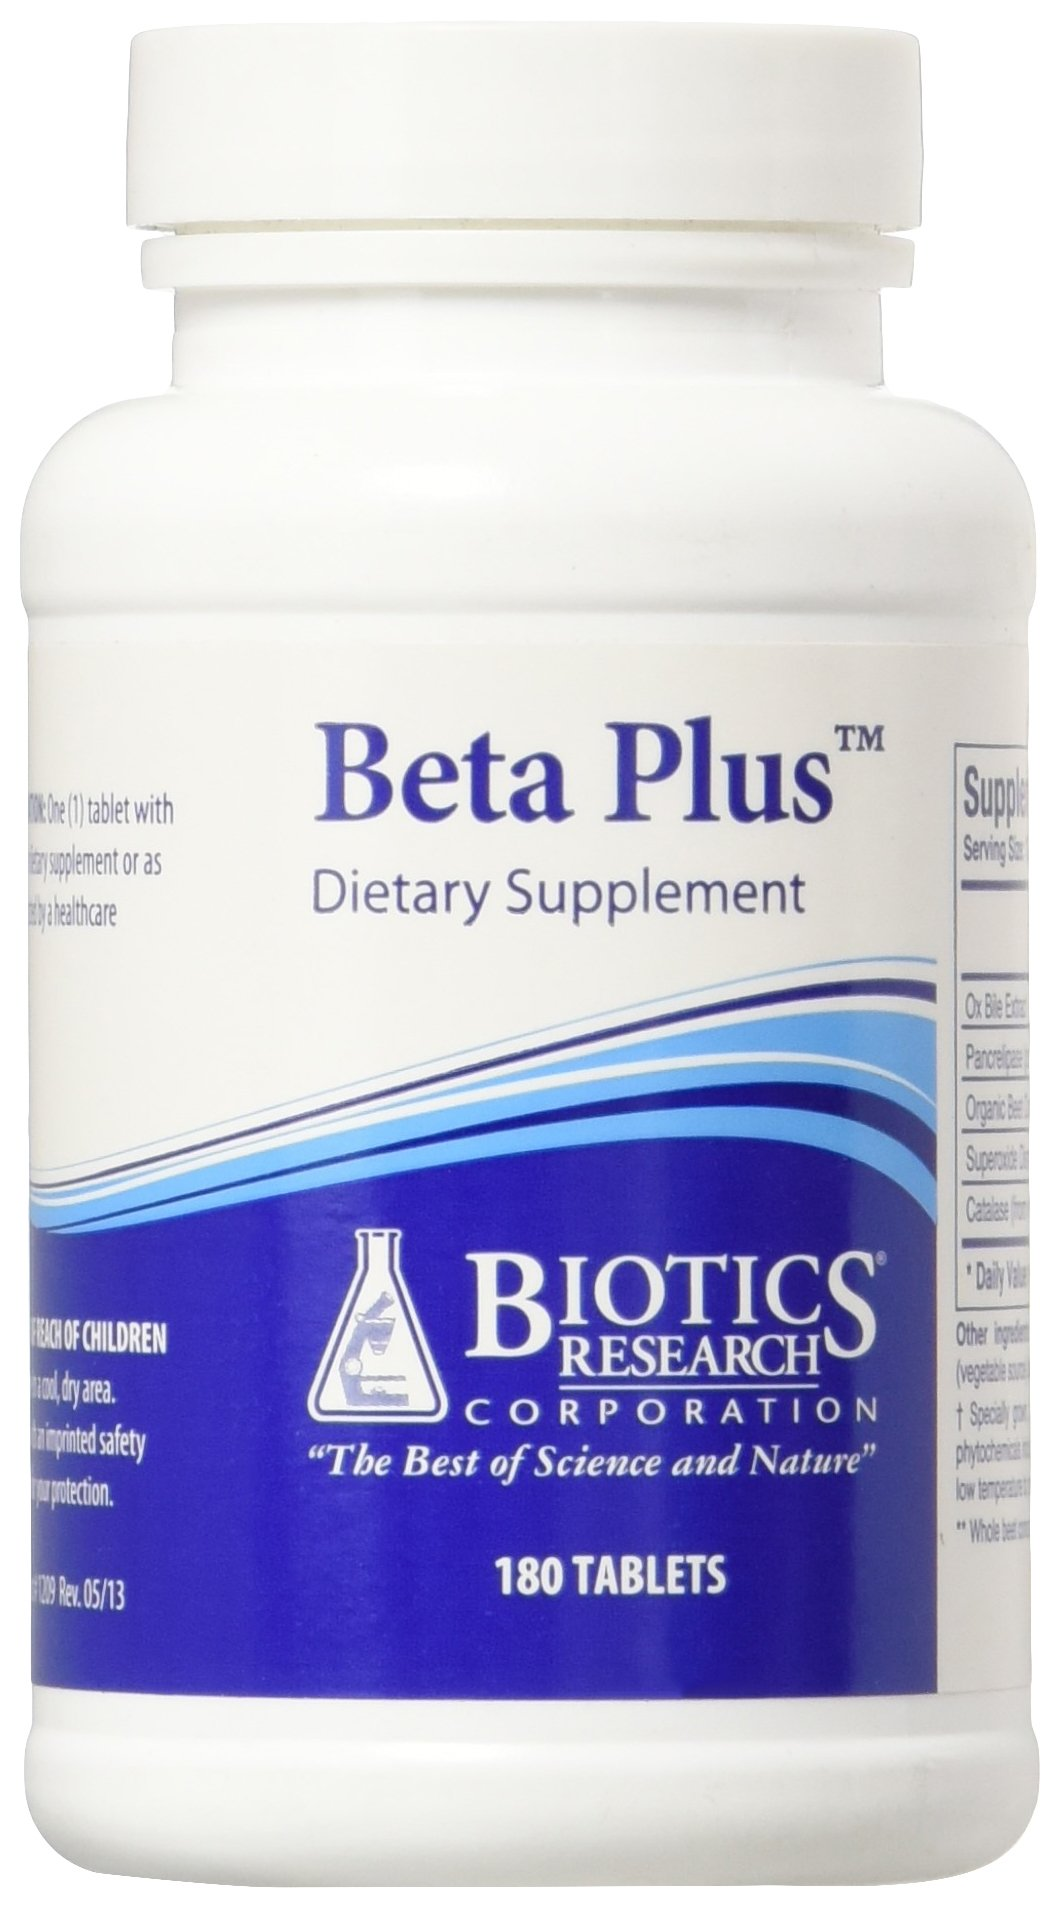 Biotics Research Beta-Plus™ Nutritional Support for Bile Production, Supports Overall Liver Function. Aids in Fat Digestion. Supplies Betaine (Organic Beet Concentrate)